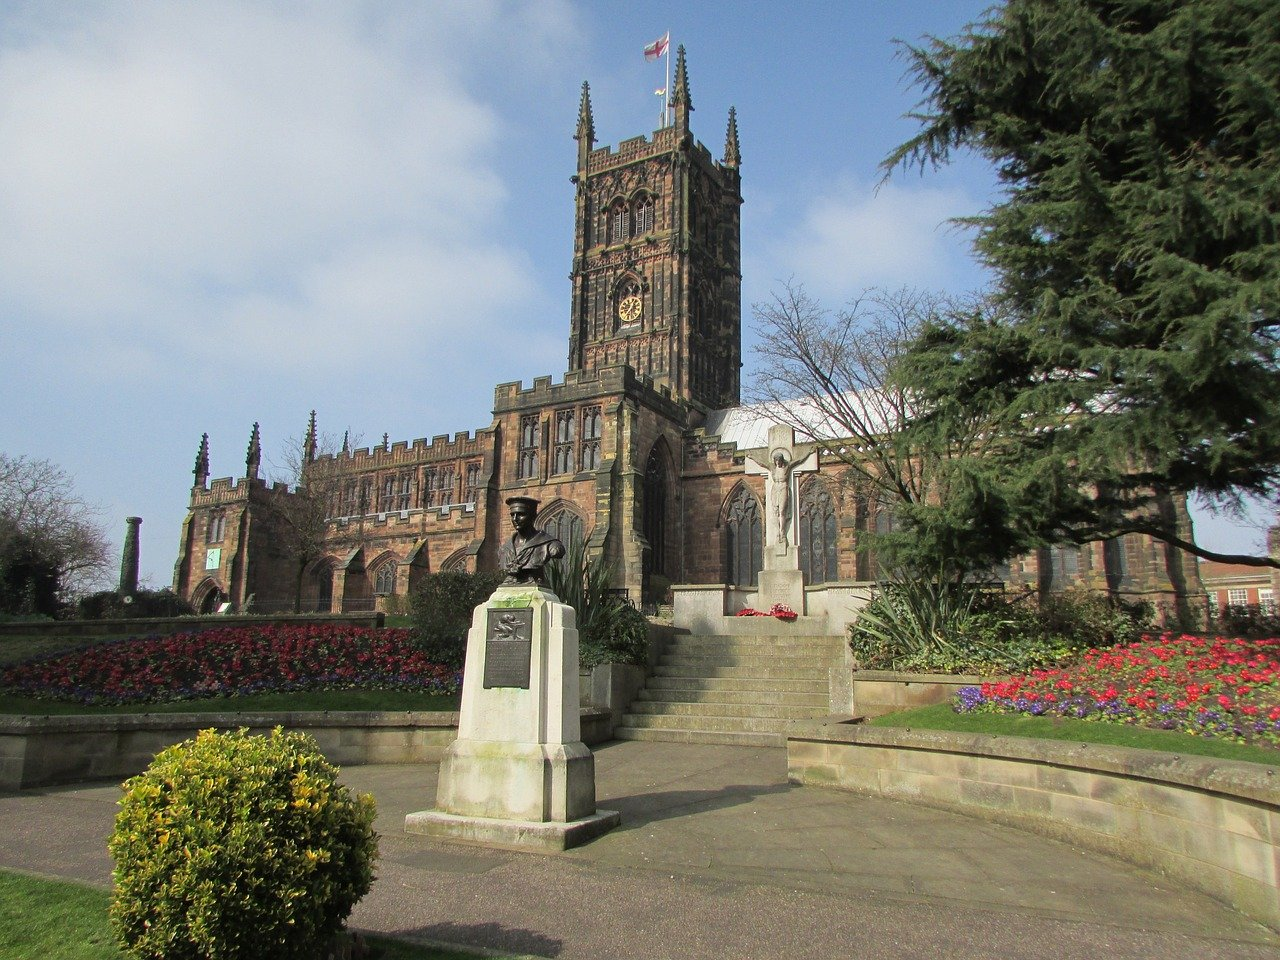 cathedral in Wolverhampton, UK